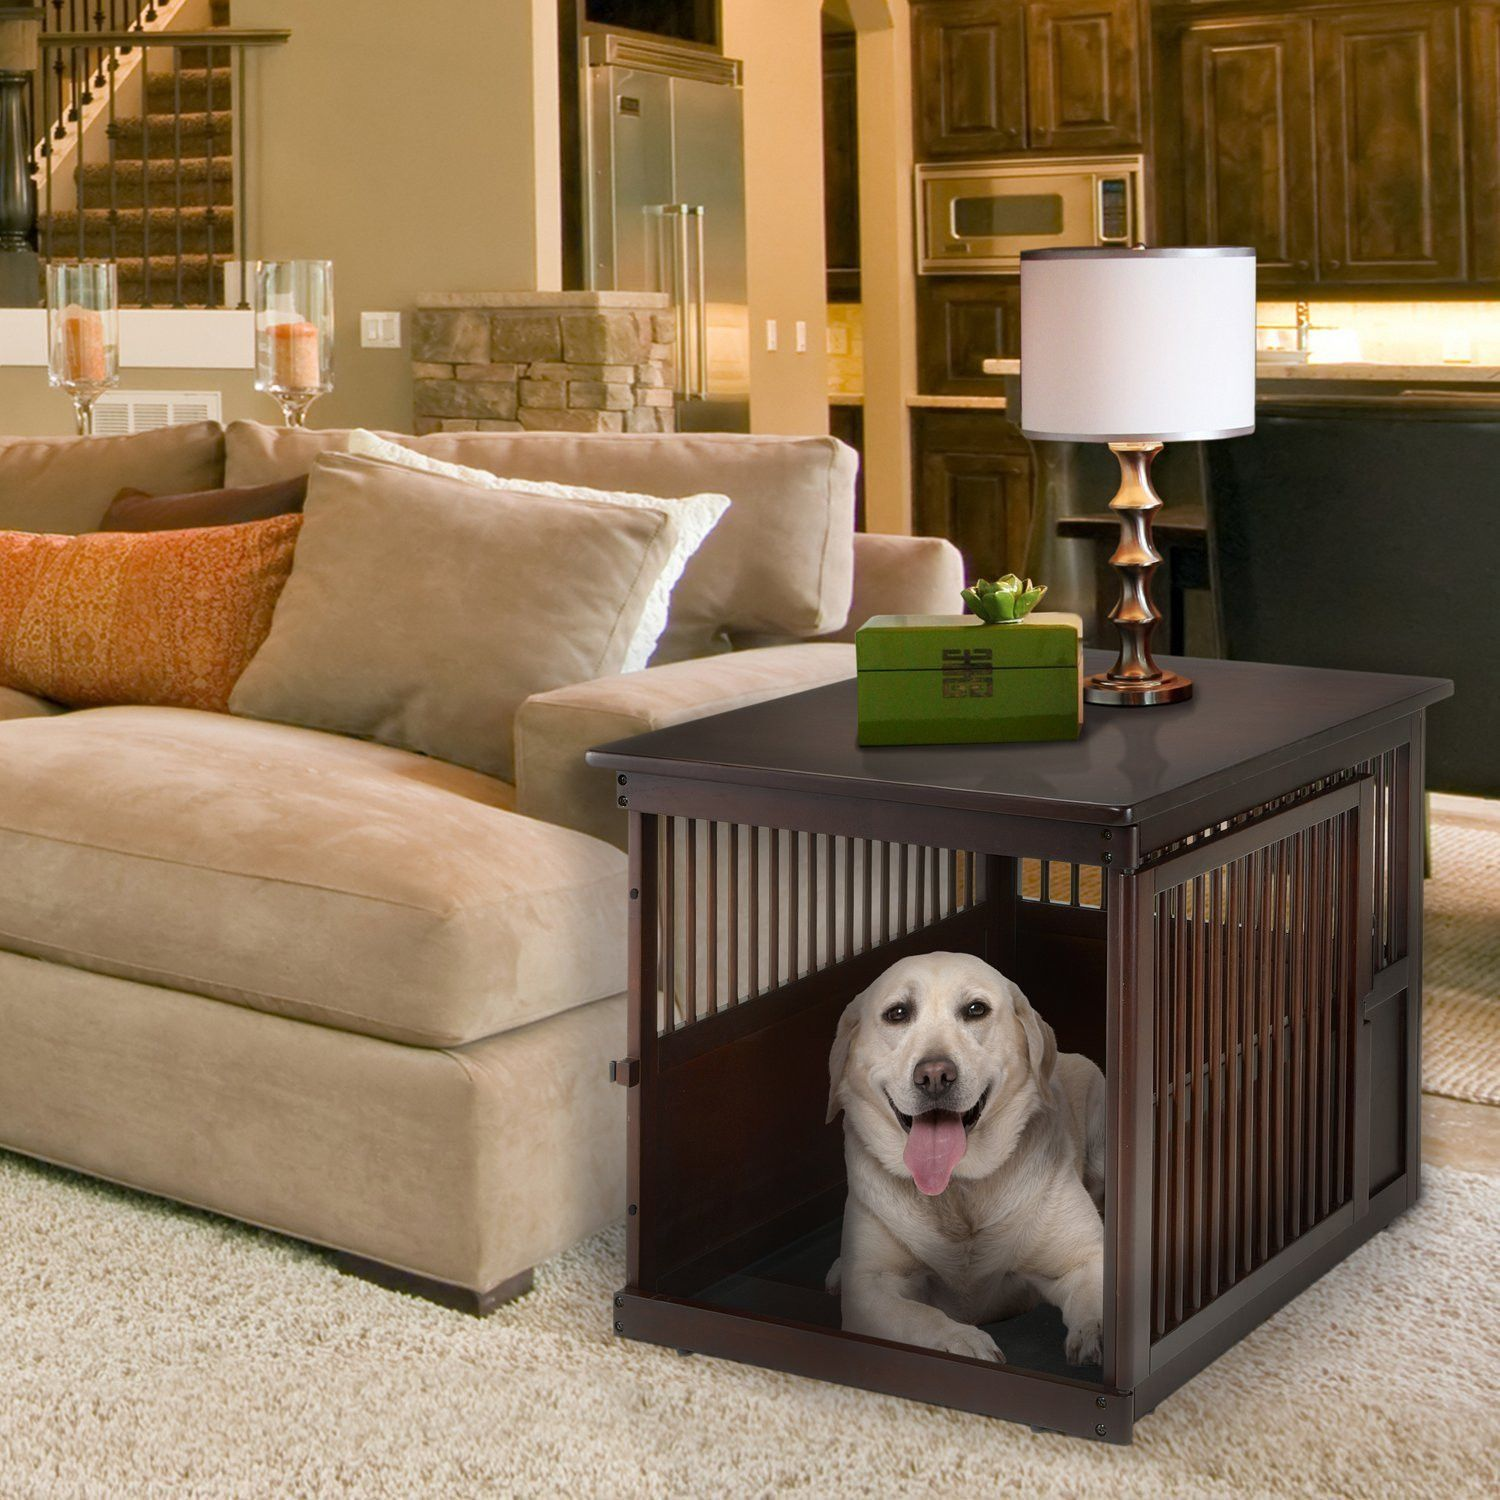 cool end table dog crate furniture | Large End Table Dog Crate | Cool things | Wooden dog crate ...